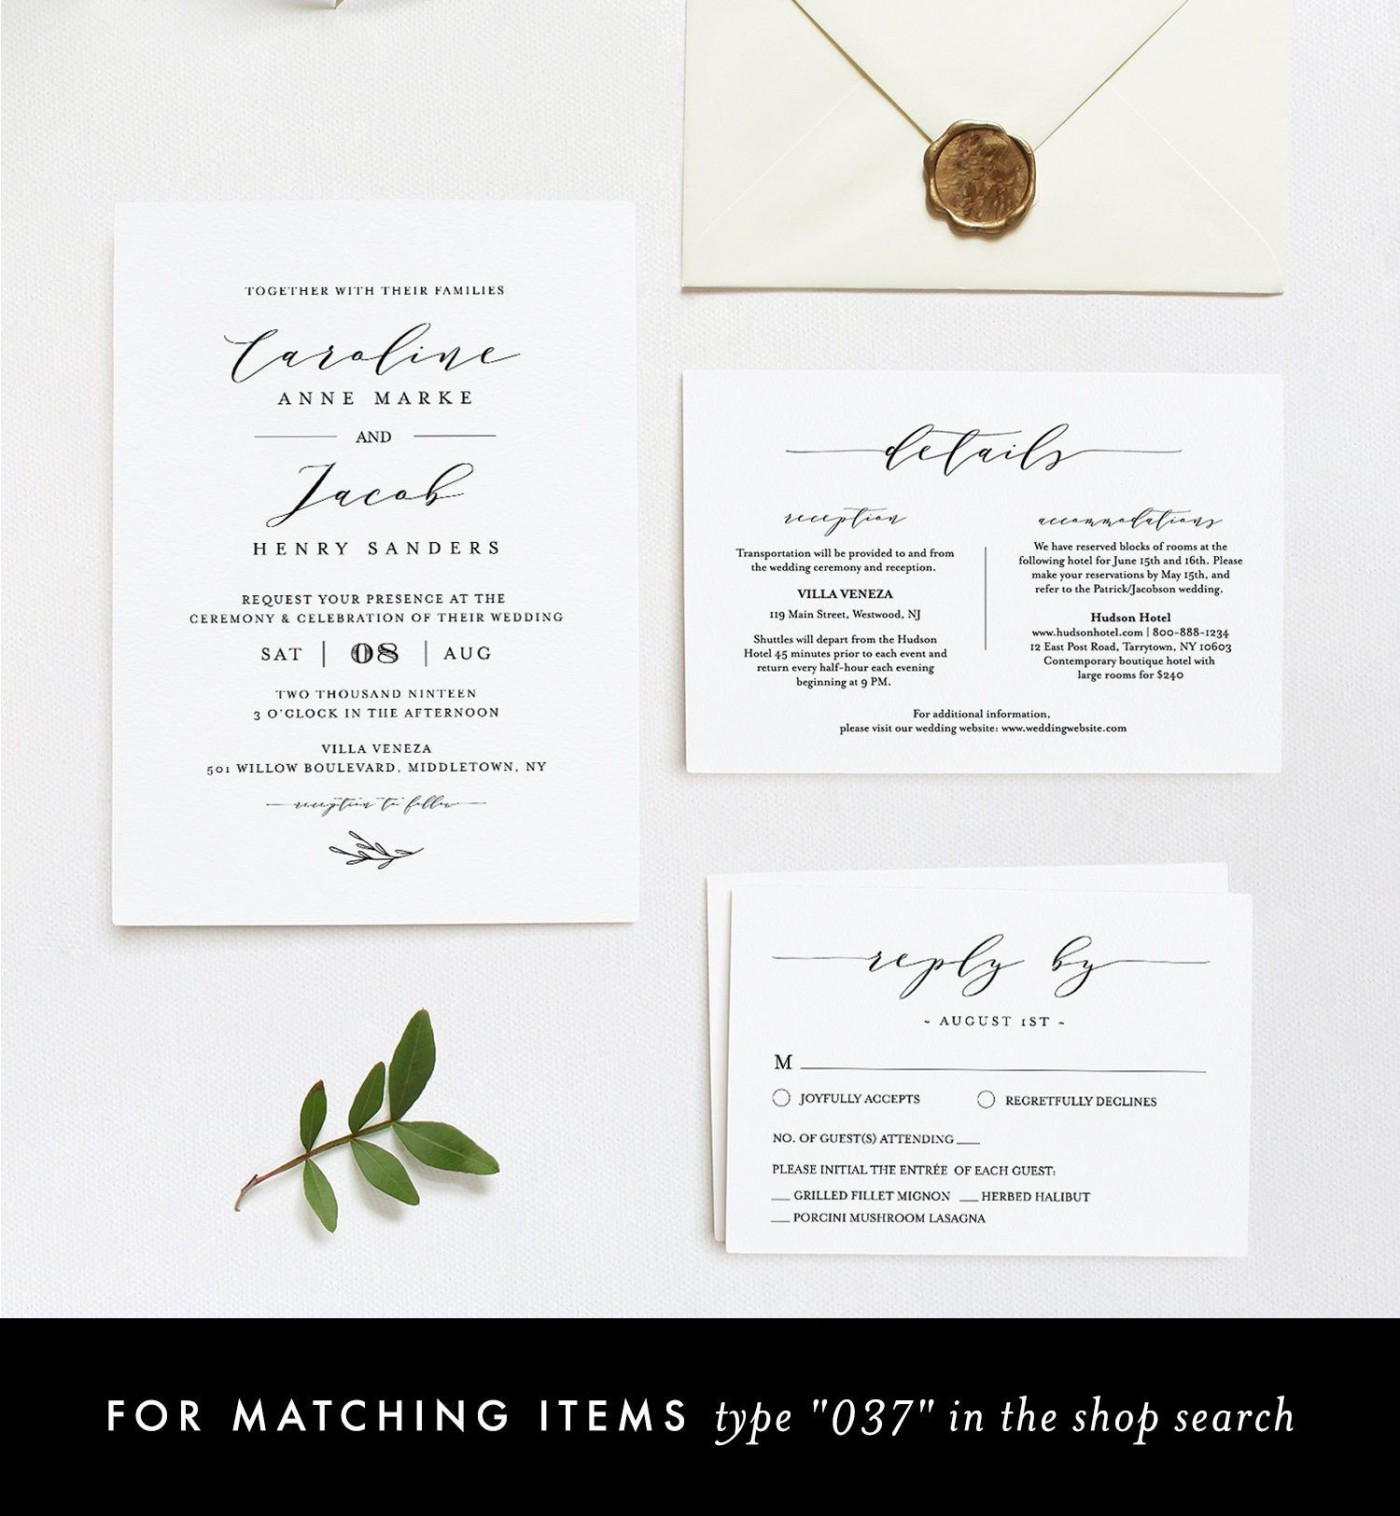 008 Marvelou Wedding Hotel Welcome Letter Template High Definition 1400